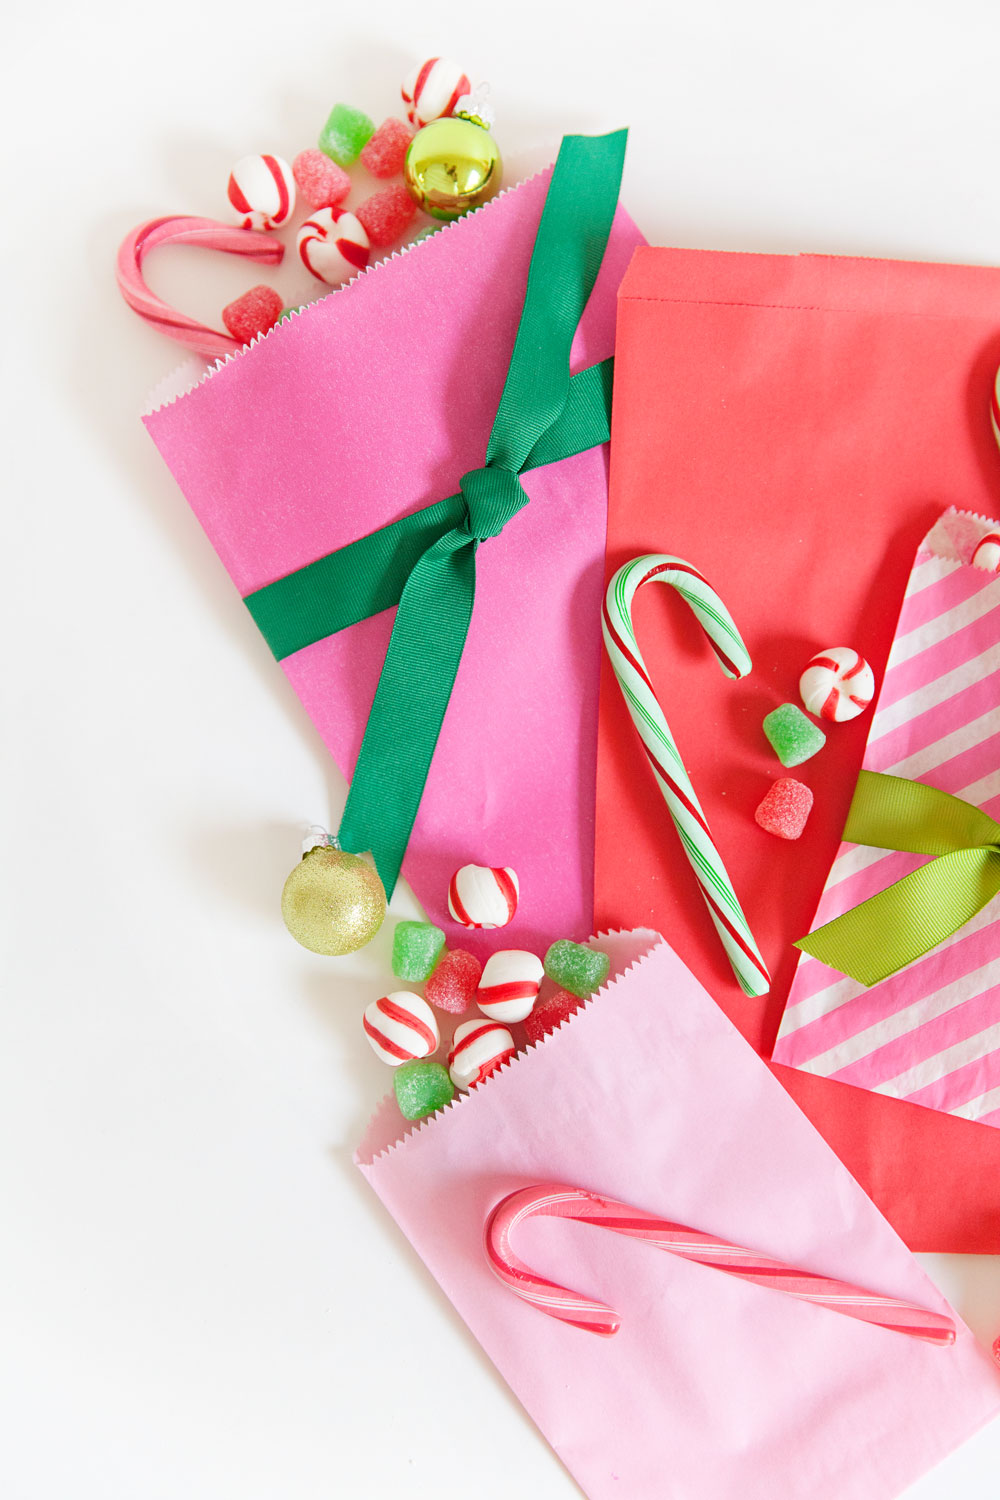 candy-filled-bags-as-an-Advent-Calendar